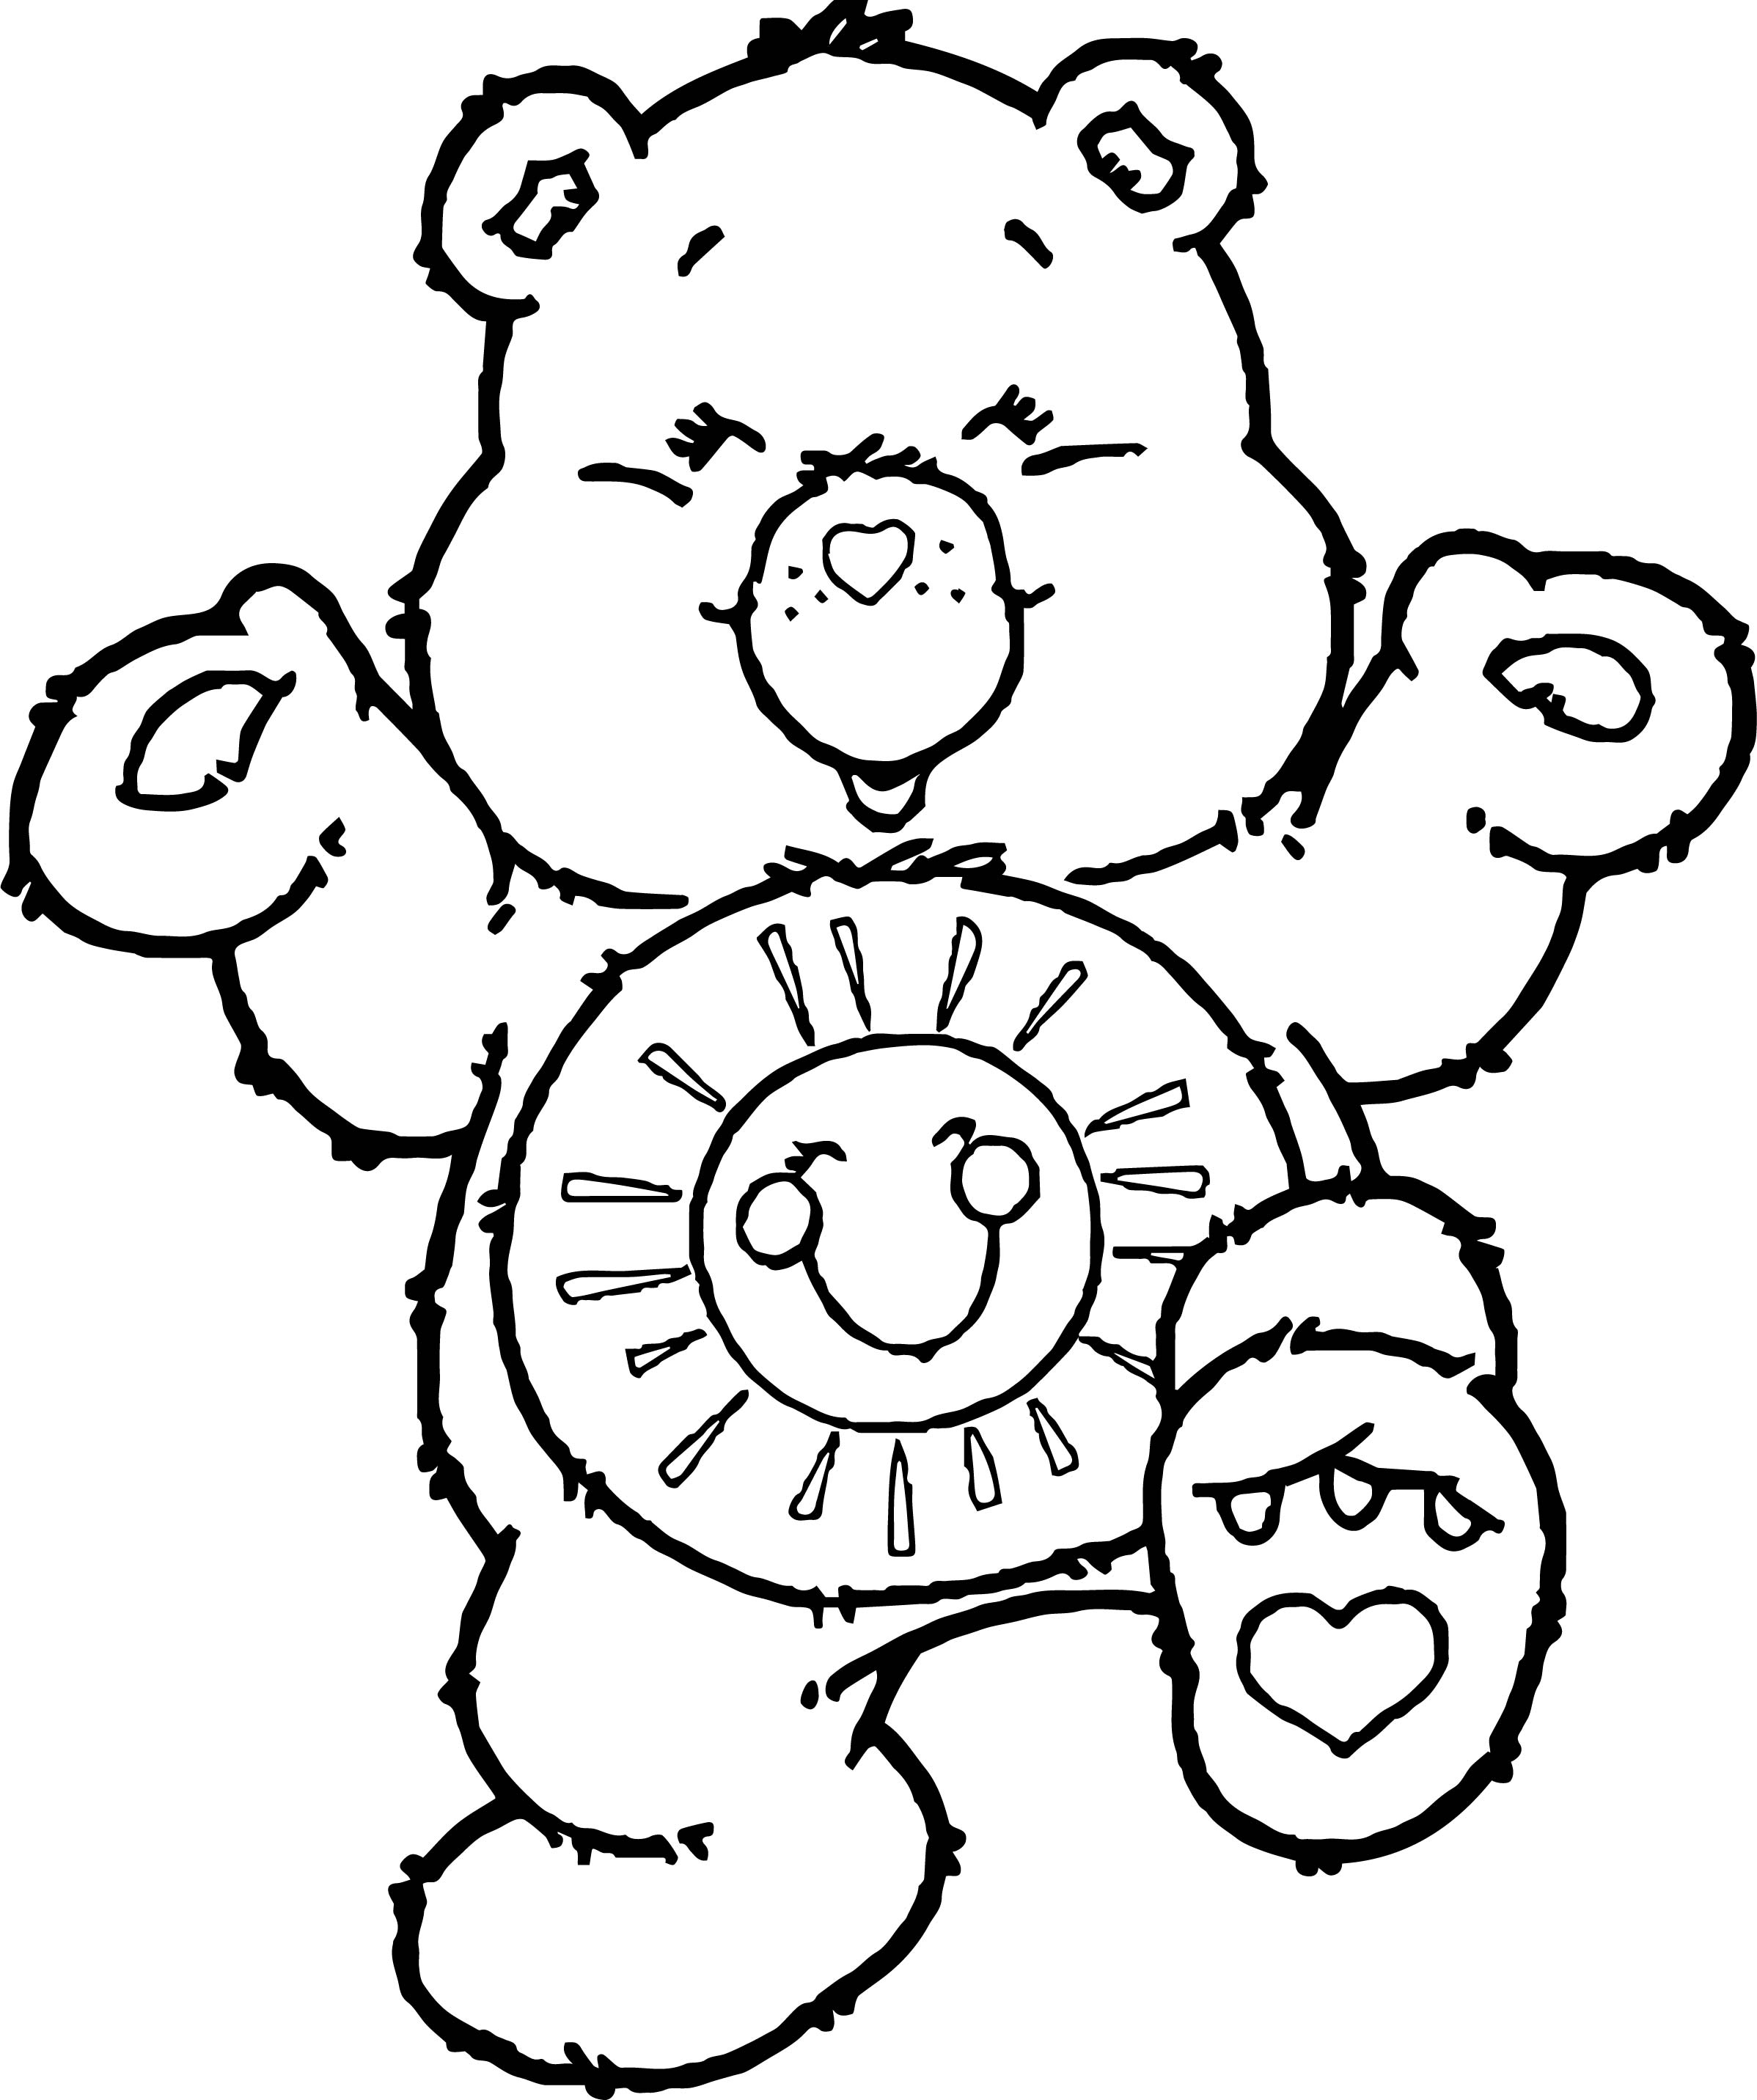 Care bears joy coloring page for Joy coloring pages